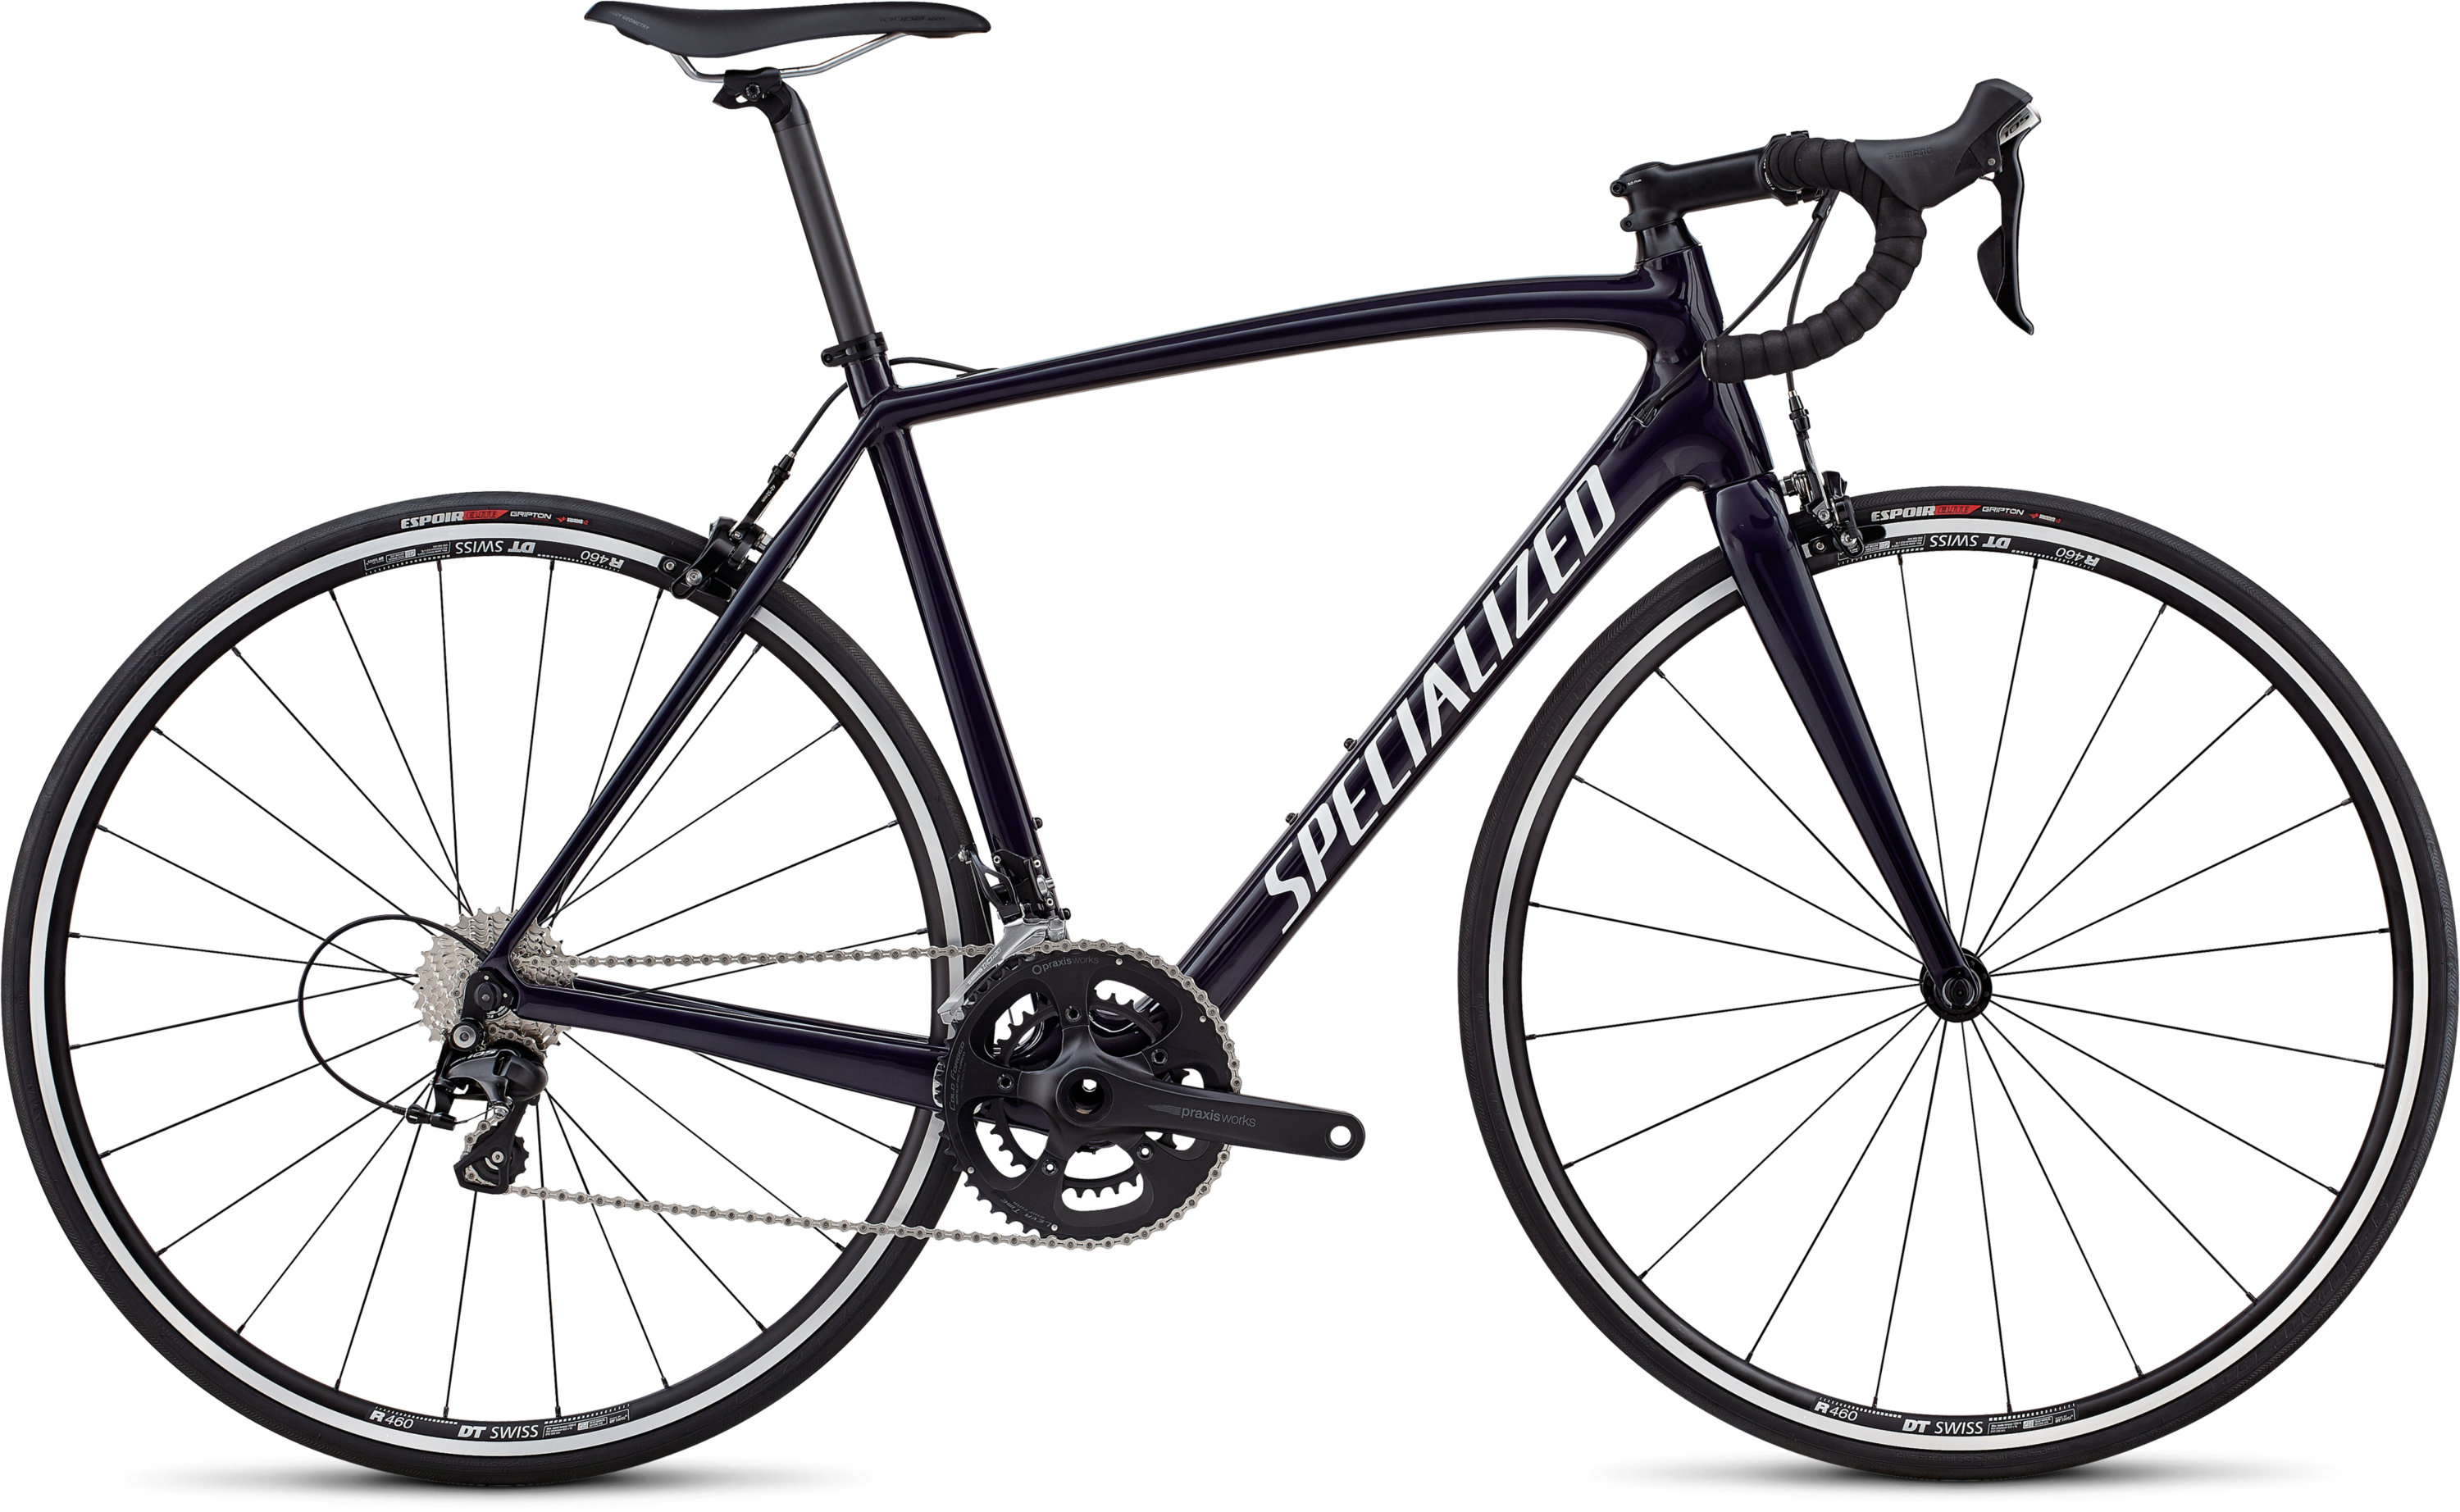 Pick your Size Used 2018 Specialized Tarmac SL4 Carbon Road Bike